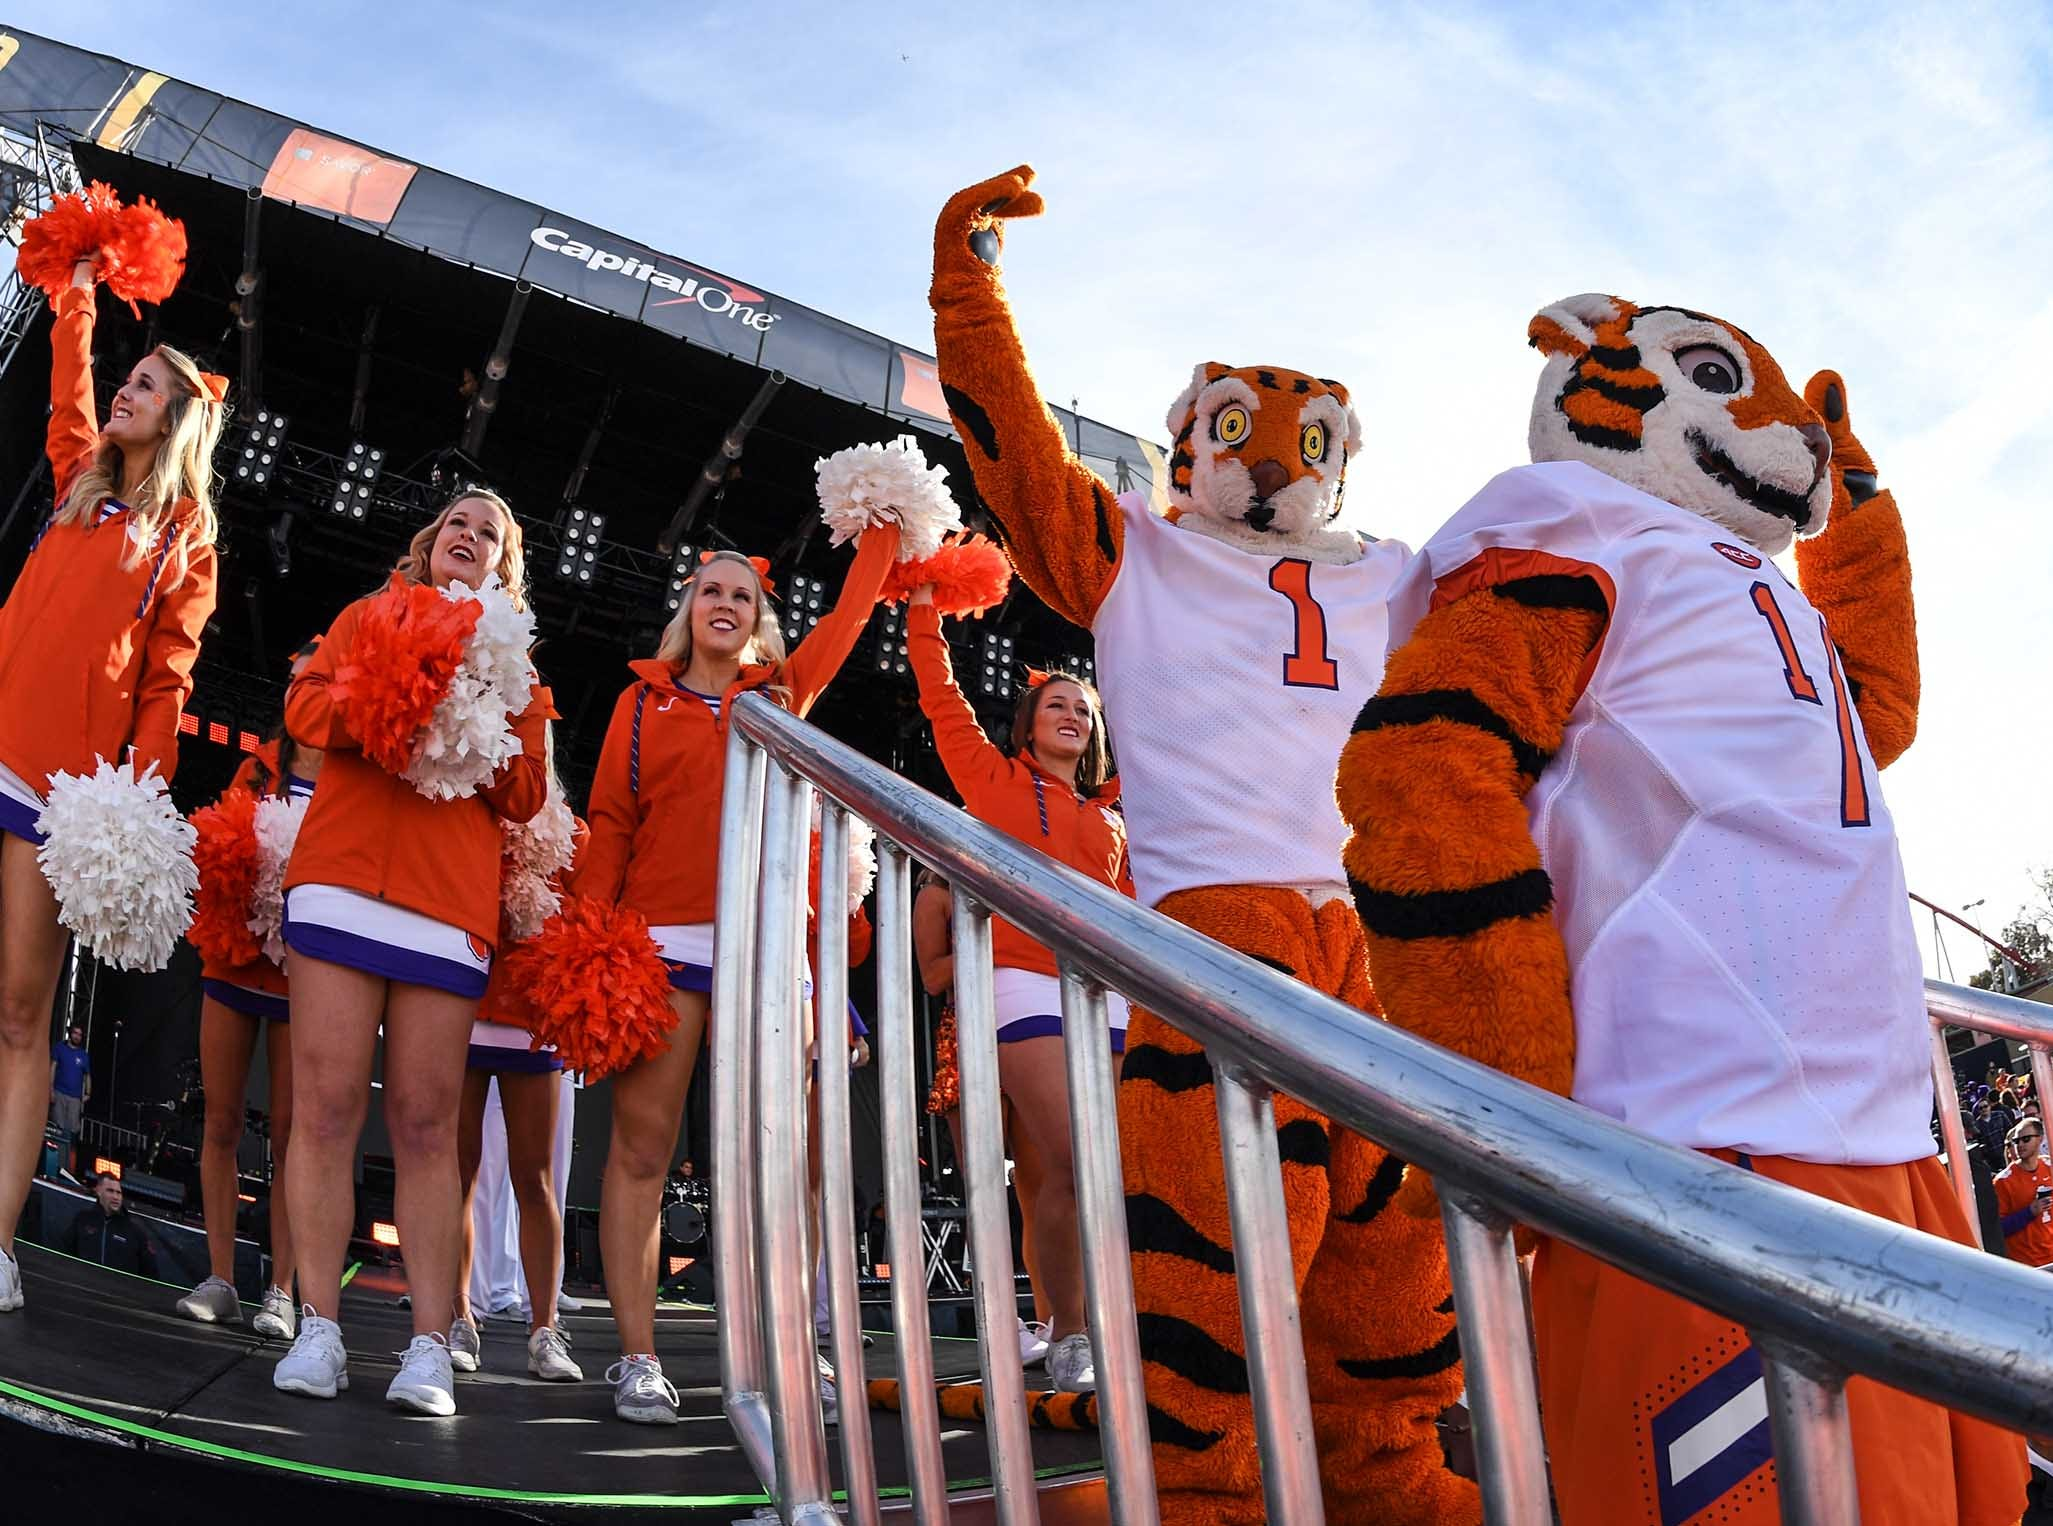 Clemson Tiger Band, cheerleaders, Tiger Dancers, twirlers, Rally Cats and fans at the College Football Championship Playoff Tailgate outside Levi's Stadium in Santa Clara, California Monday, January 7, 2019.